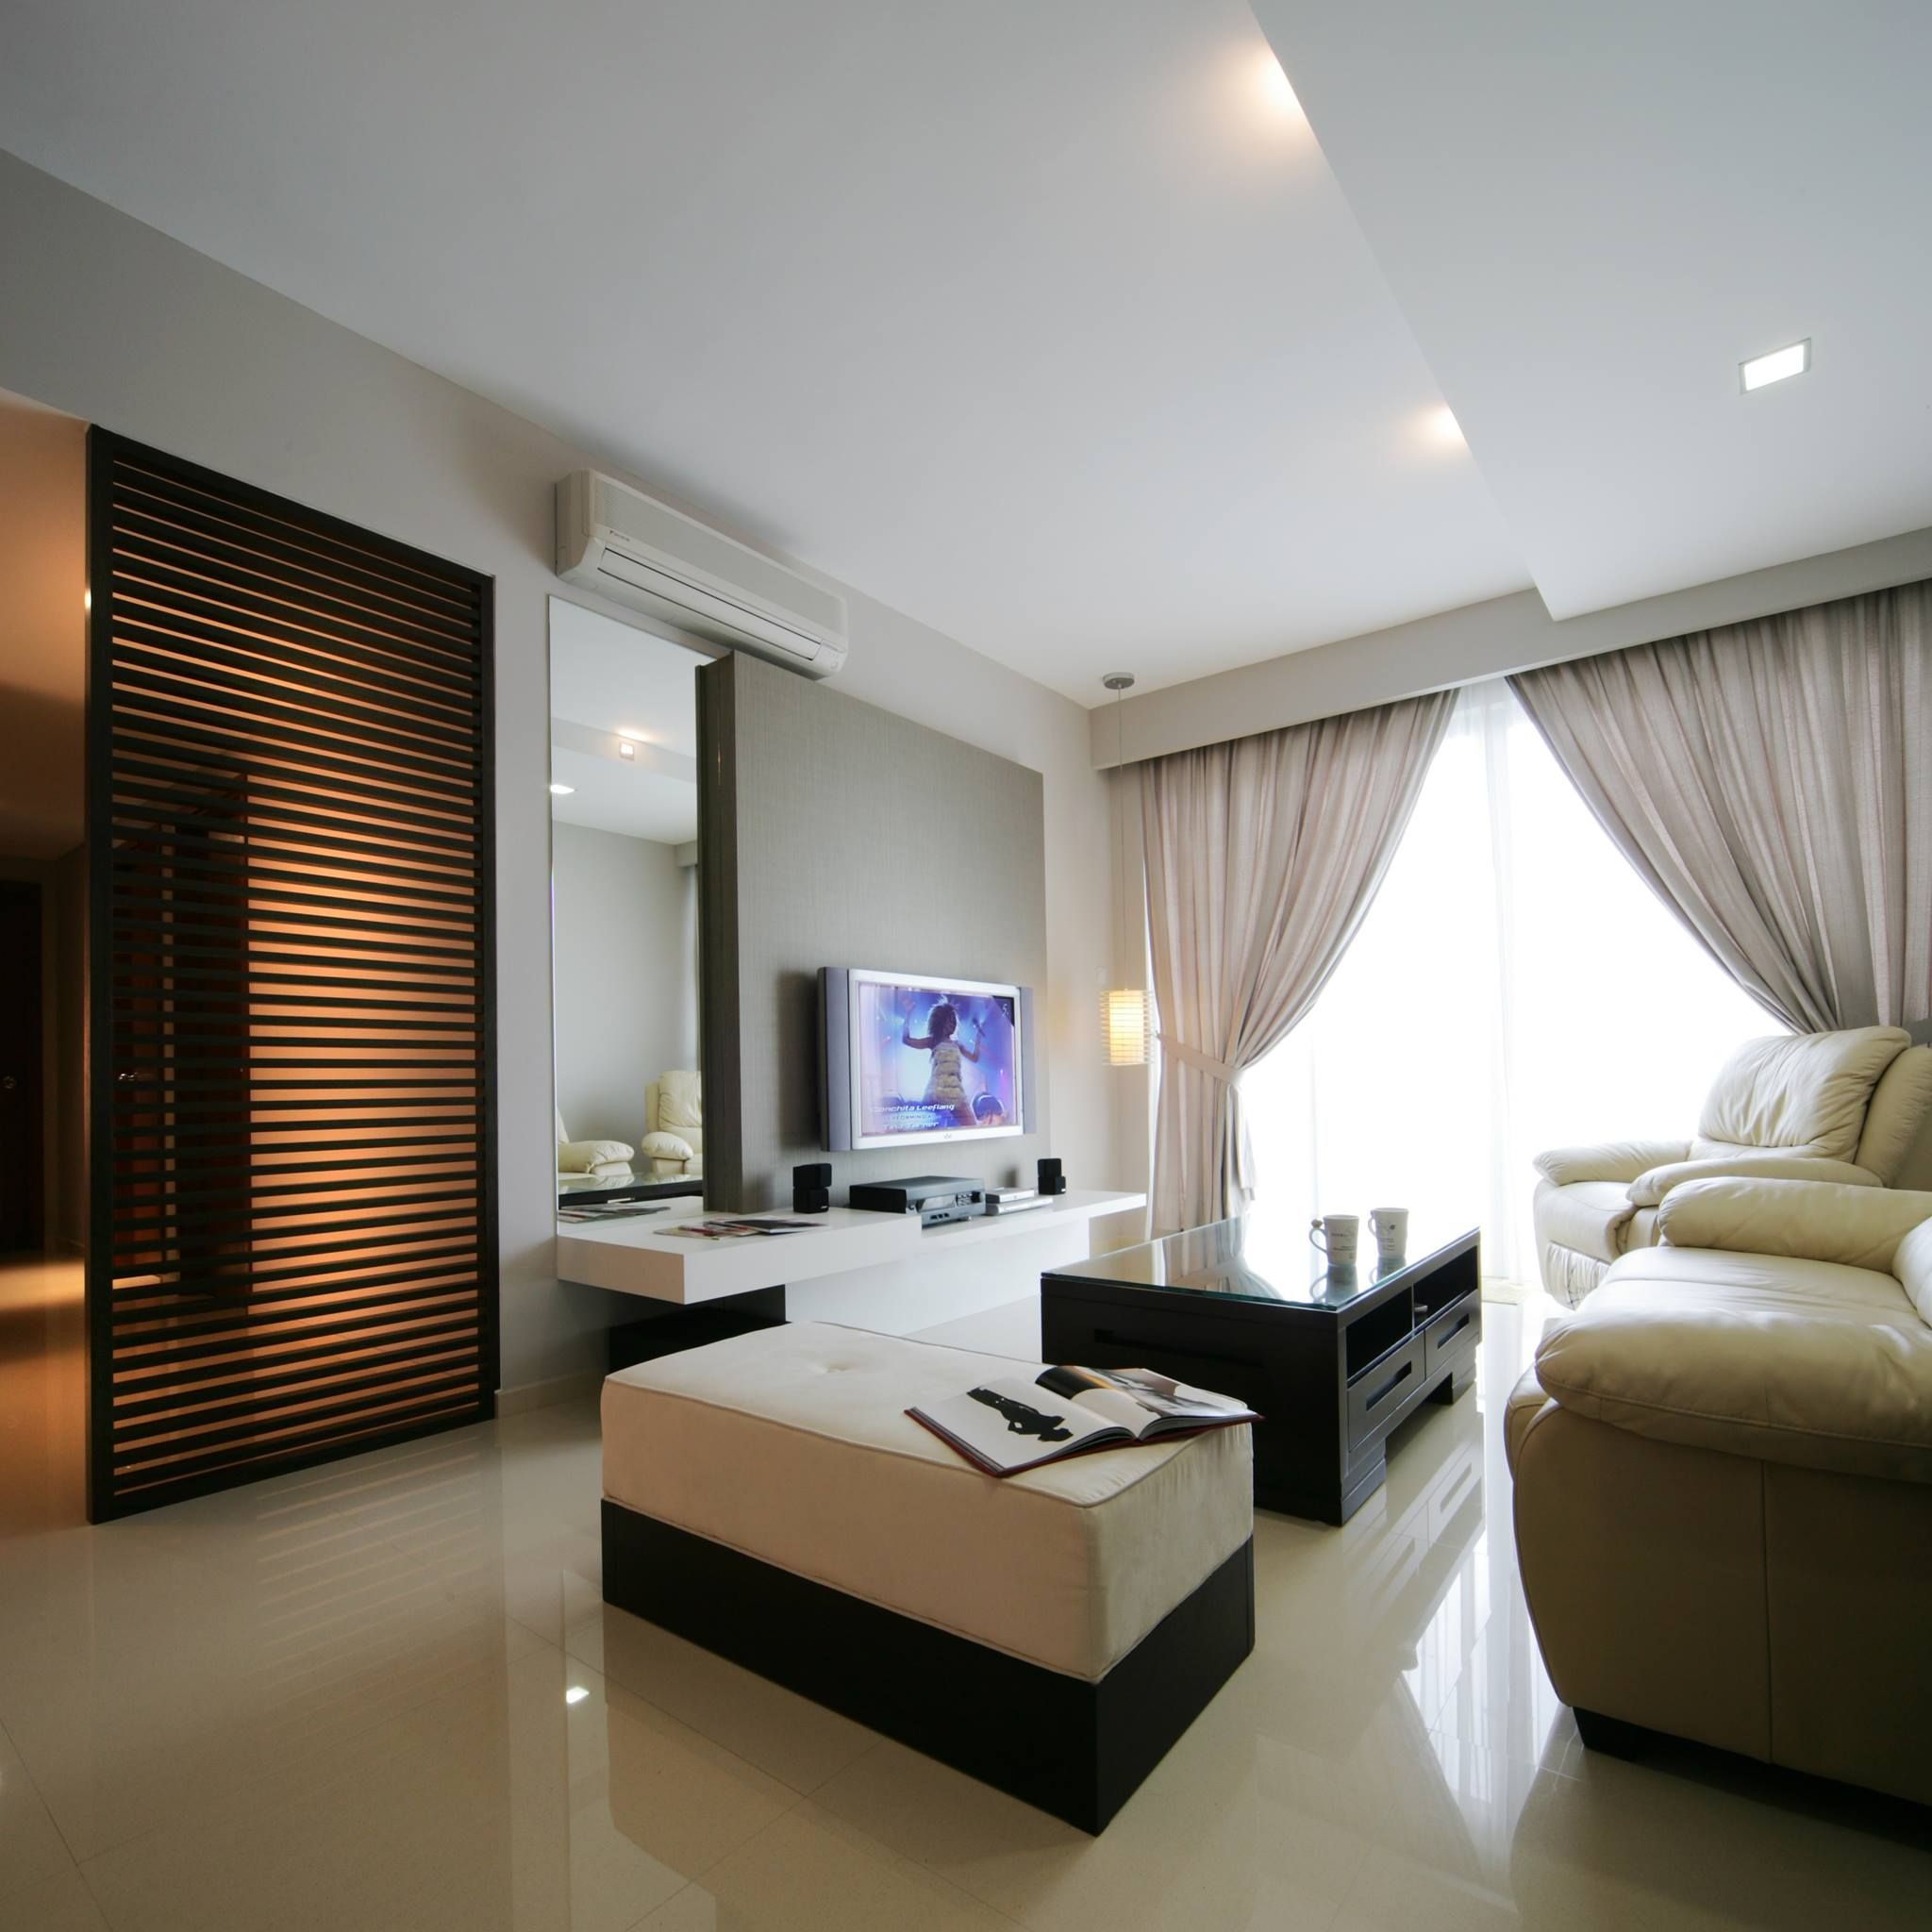 This Is A Simple Modern Design That Is Suitable For HDB